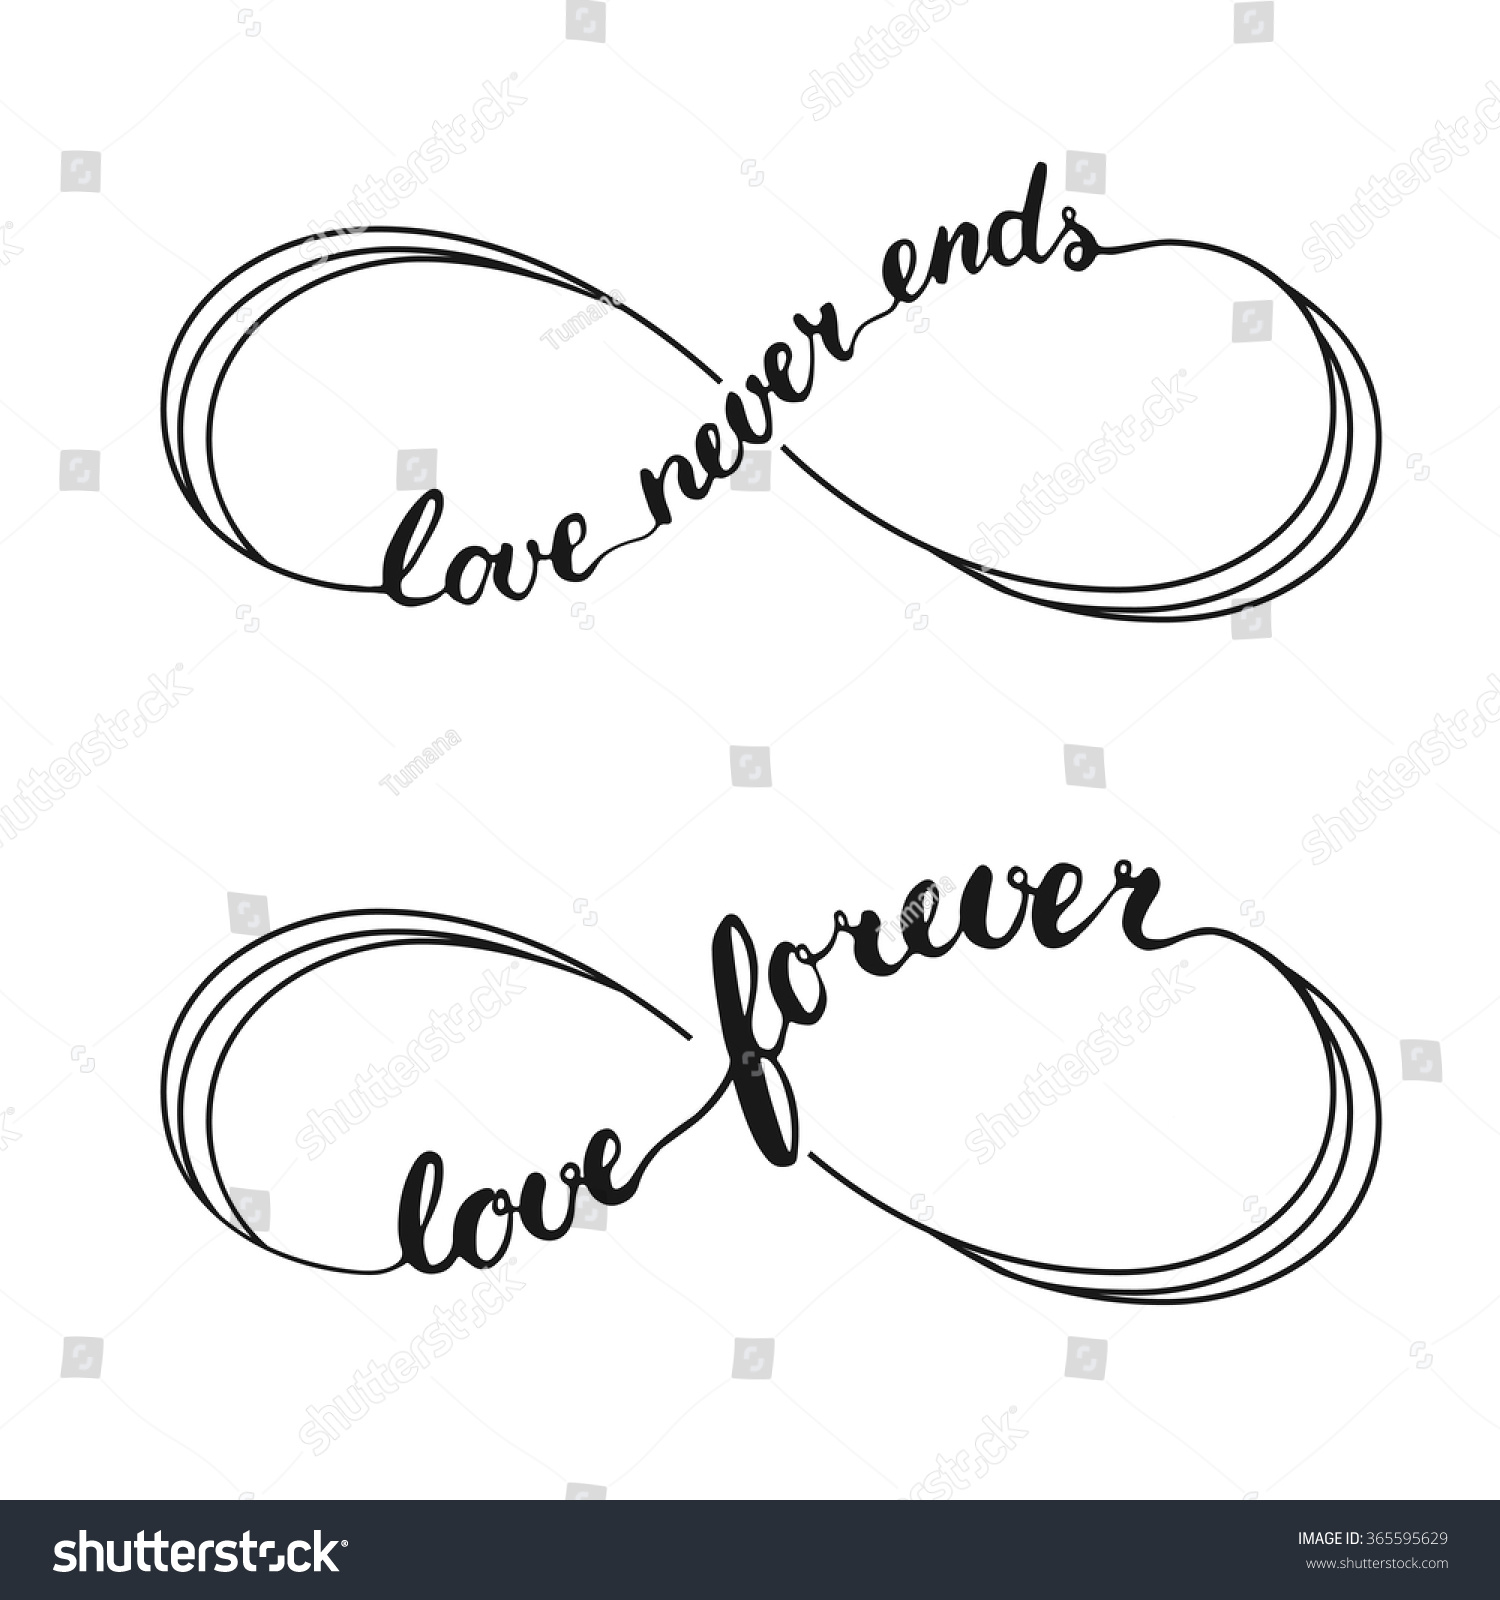 love free forever image royalty infinity hd vector stock symbol